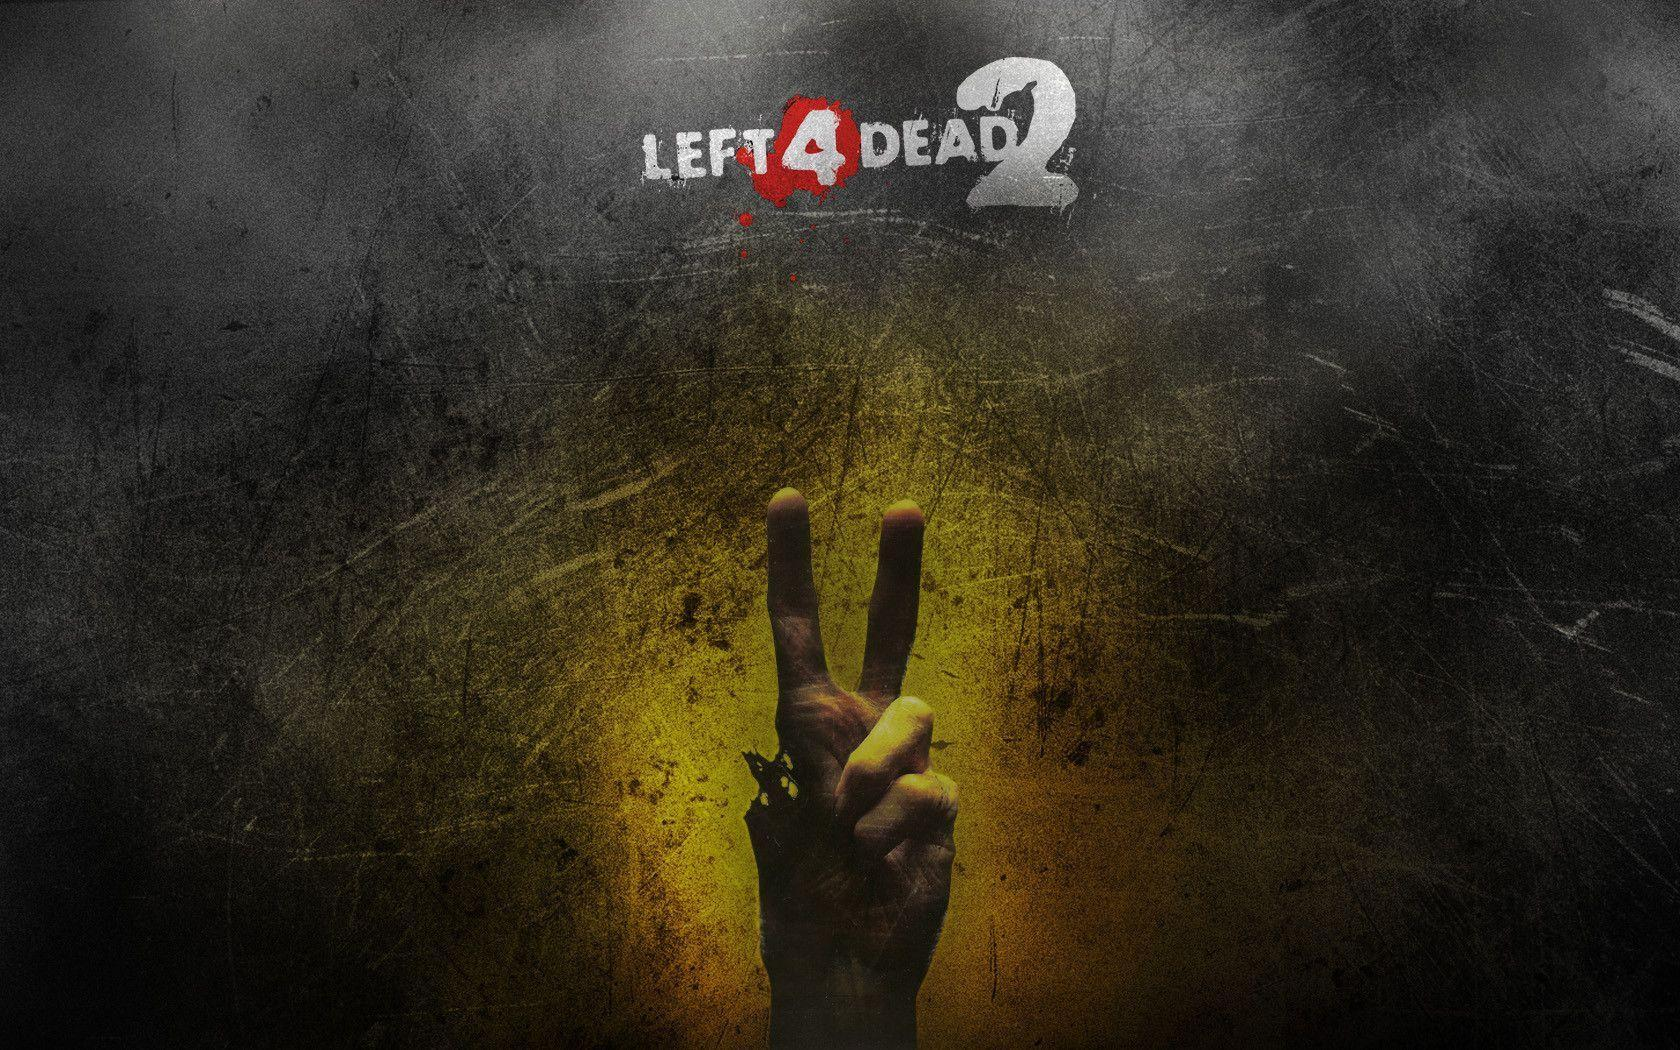 World Of Warcraft Wallpapers Hd Left 4 Dead 2 Wallpapers Wallpaper Cave